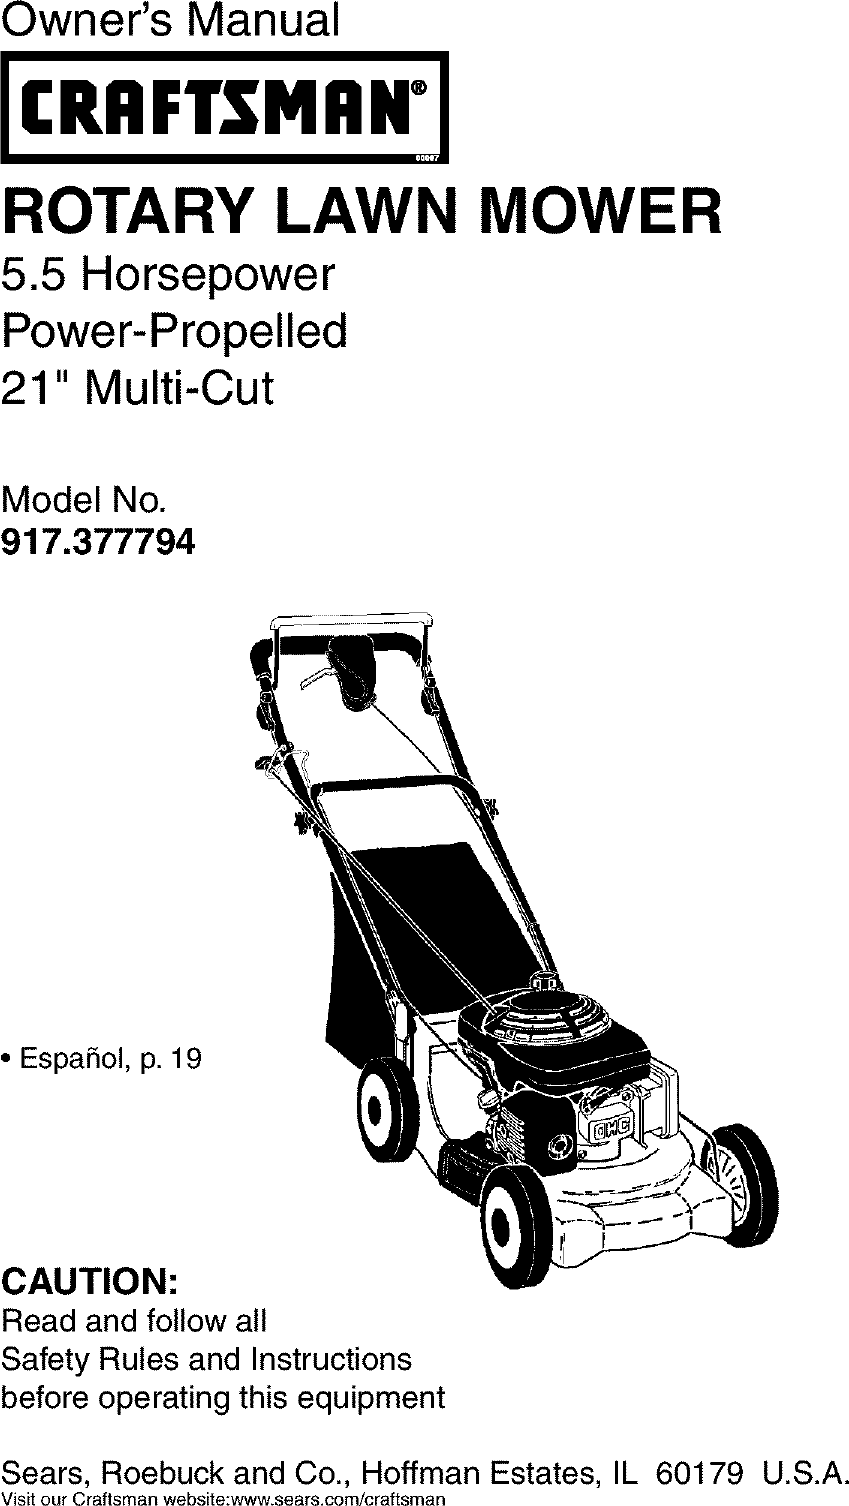 Craftsman 917377794 User Manual Gas, Walk Behind Lawnmower